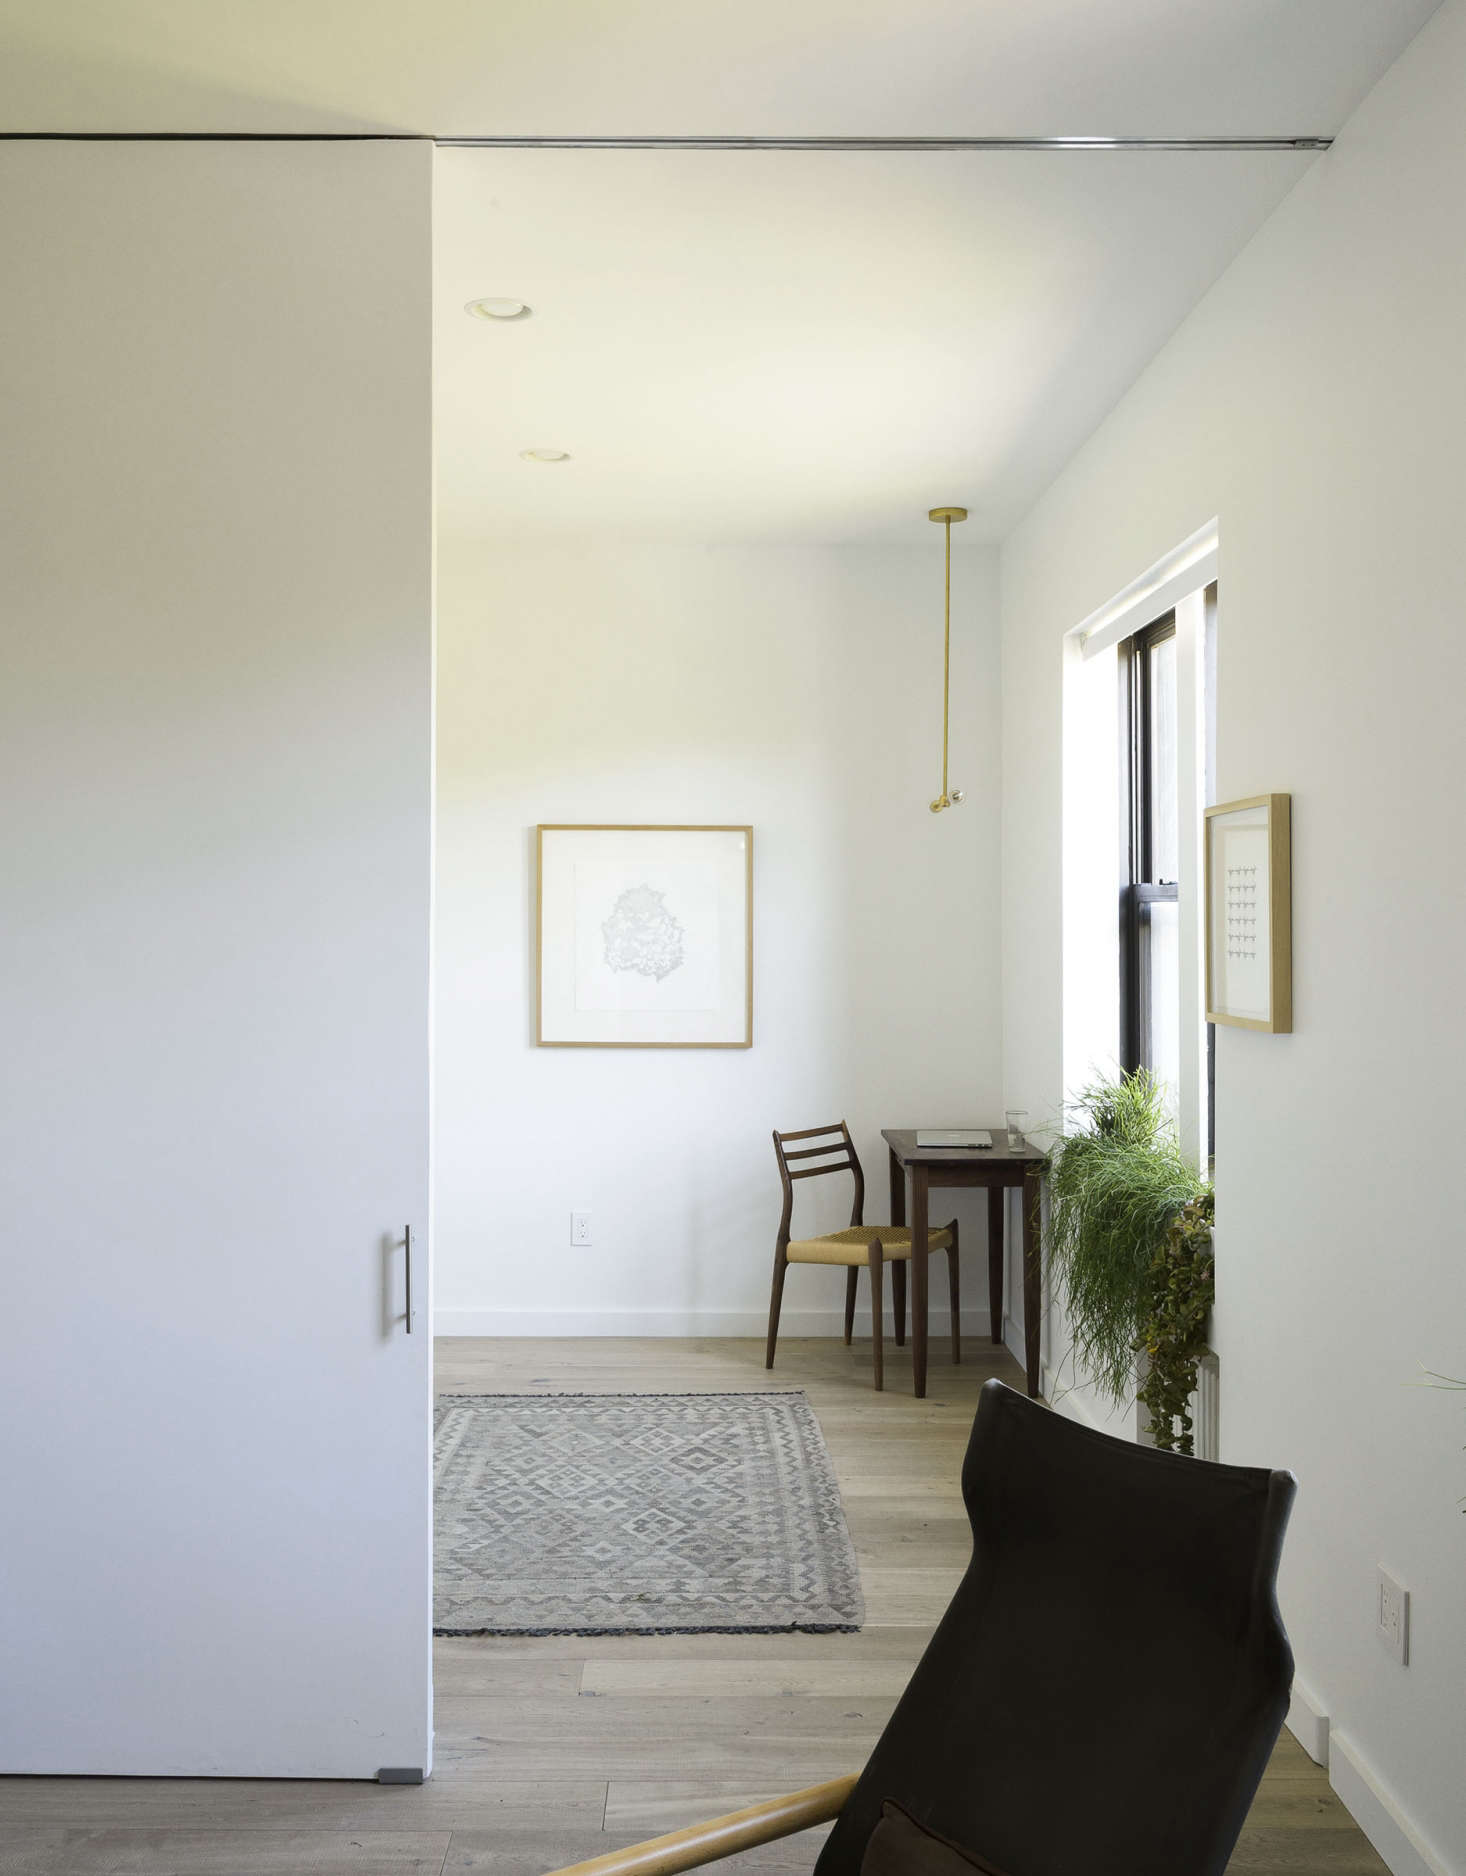 Old A Tiny See Living Large Expert Things To Know About Recessed Lighting From Square Recessed Lighting Trim 10 Inch Square Recessed Lighting Menards Recessed Lighting Goes A Long Way houzz-02 Square Recessed Lighting